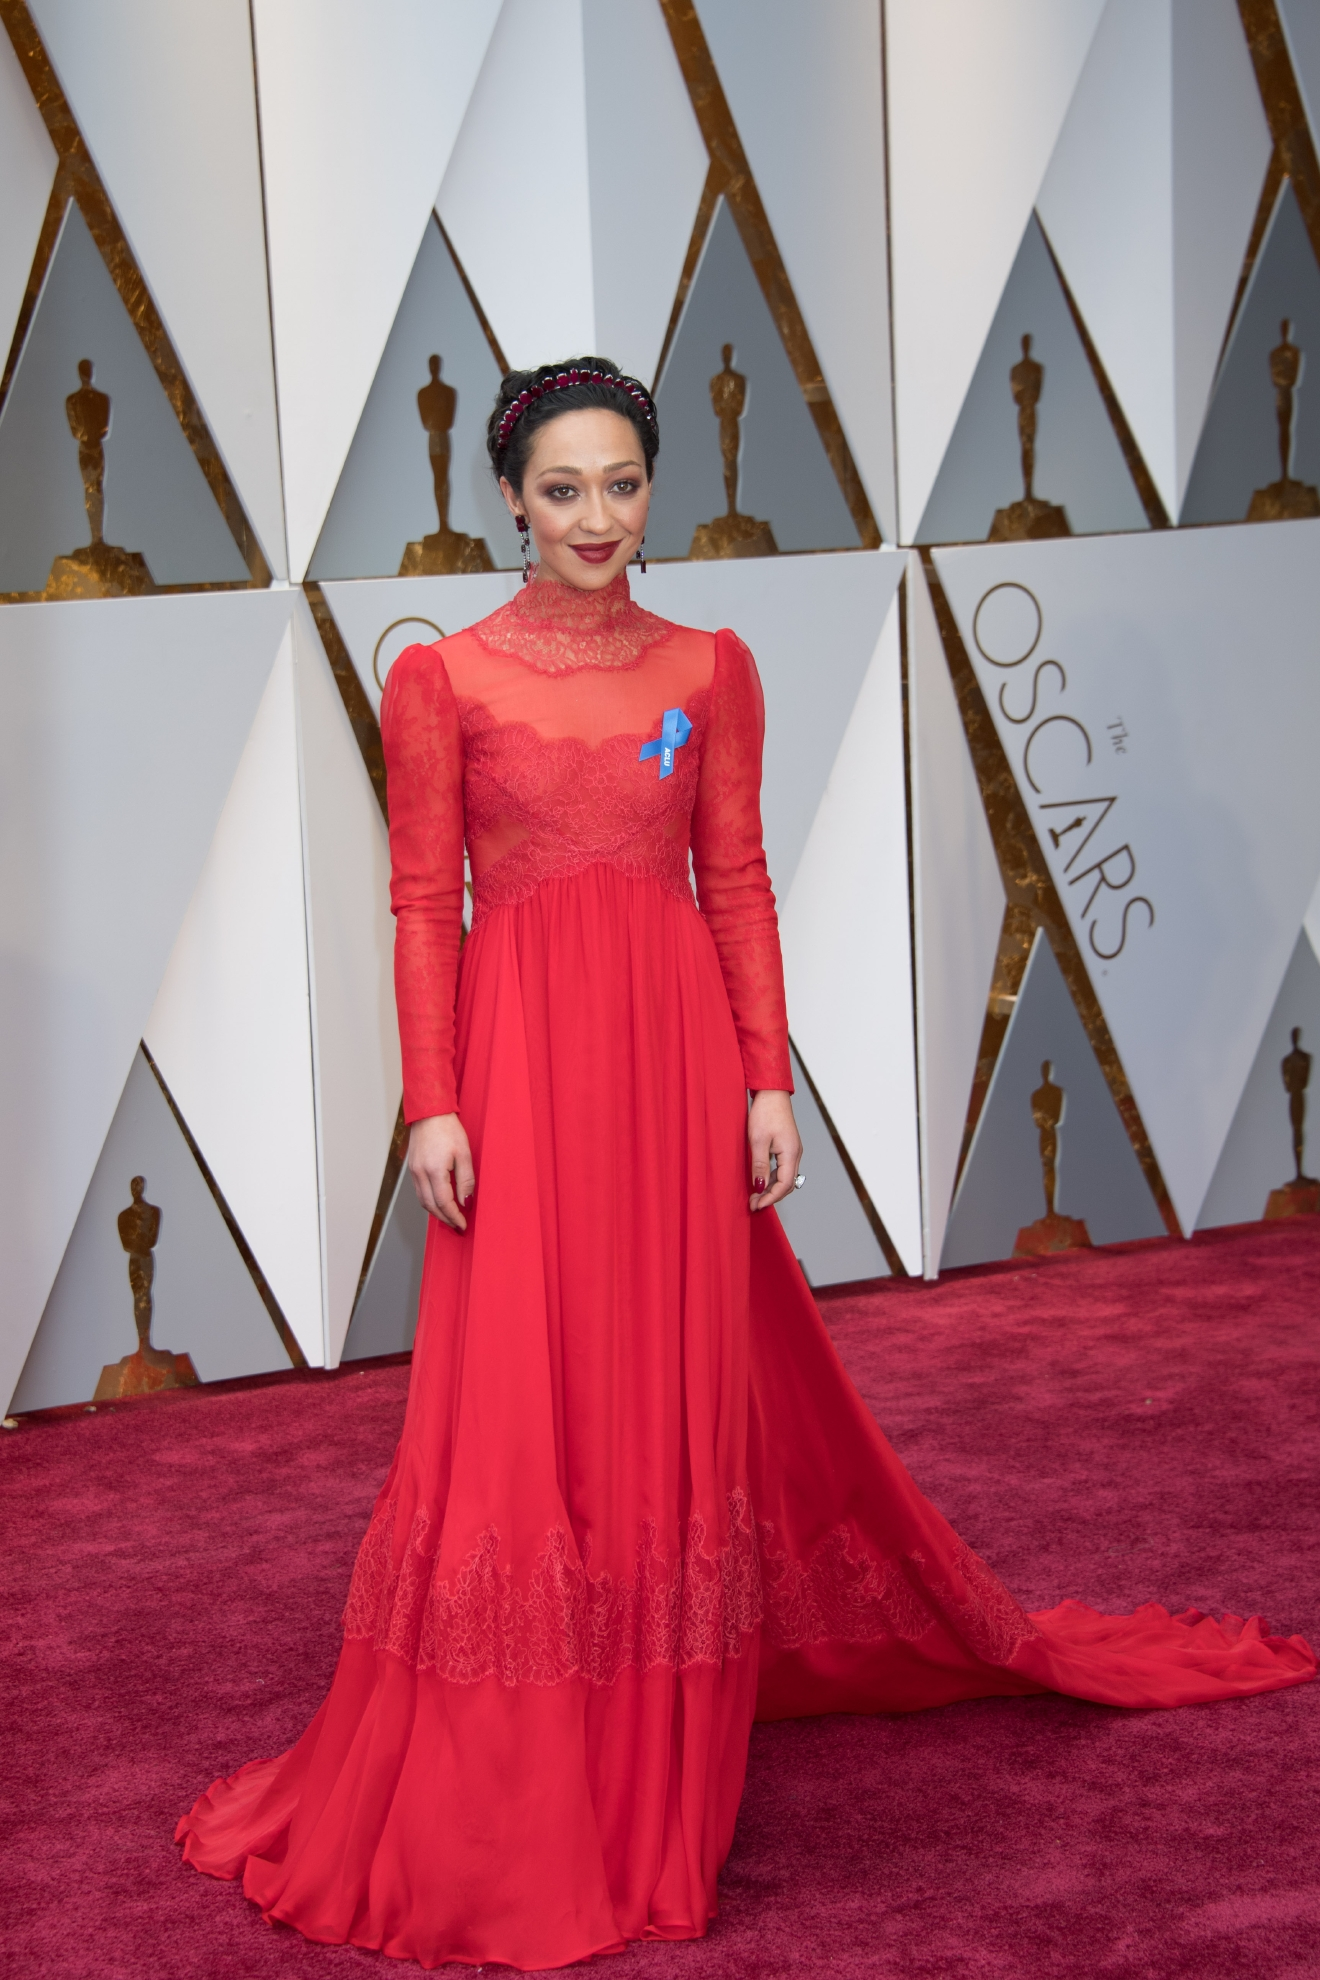 Ruth Negga, Oscar® nominee, arrives on the red carpet of The 89th Oscars® at the Dolby® Theatre in Hollywood, CA on Sunday, February 26, 2017. (Michael Yada / ©A.M.P.A.S.)